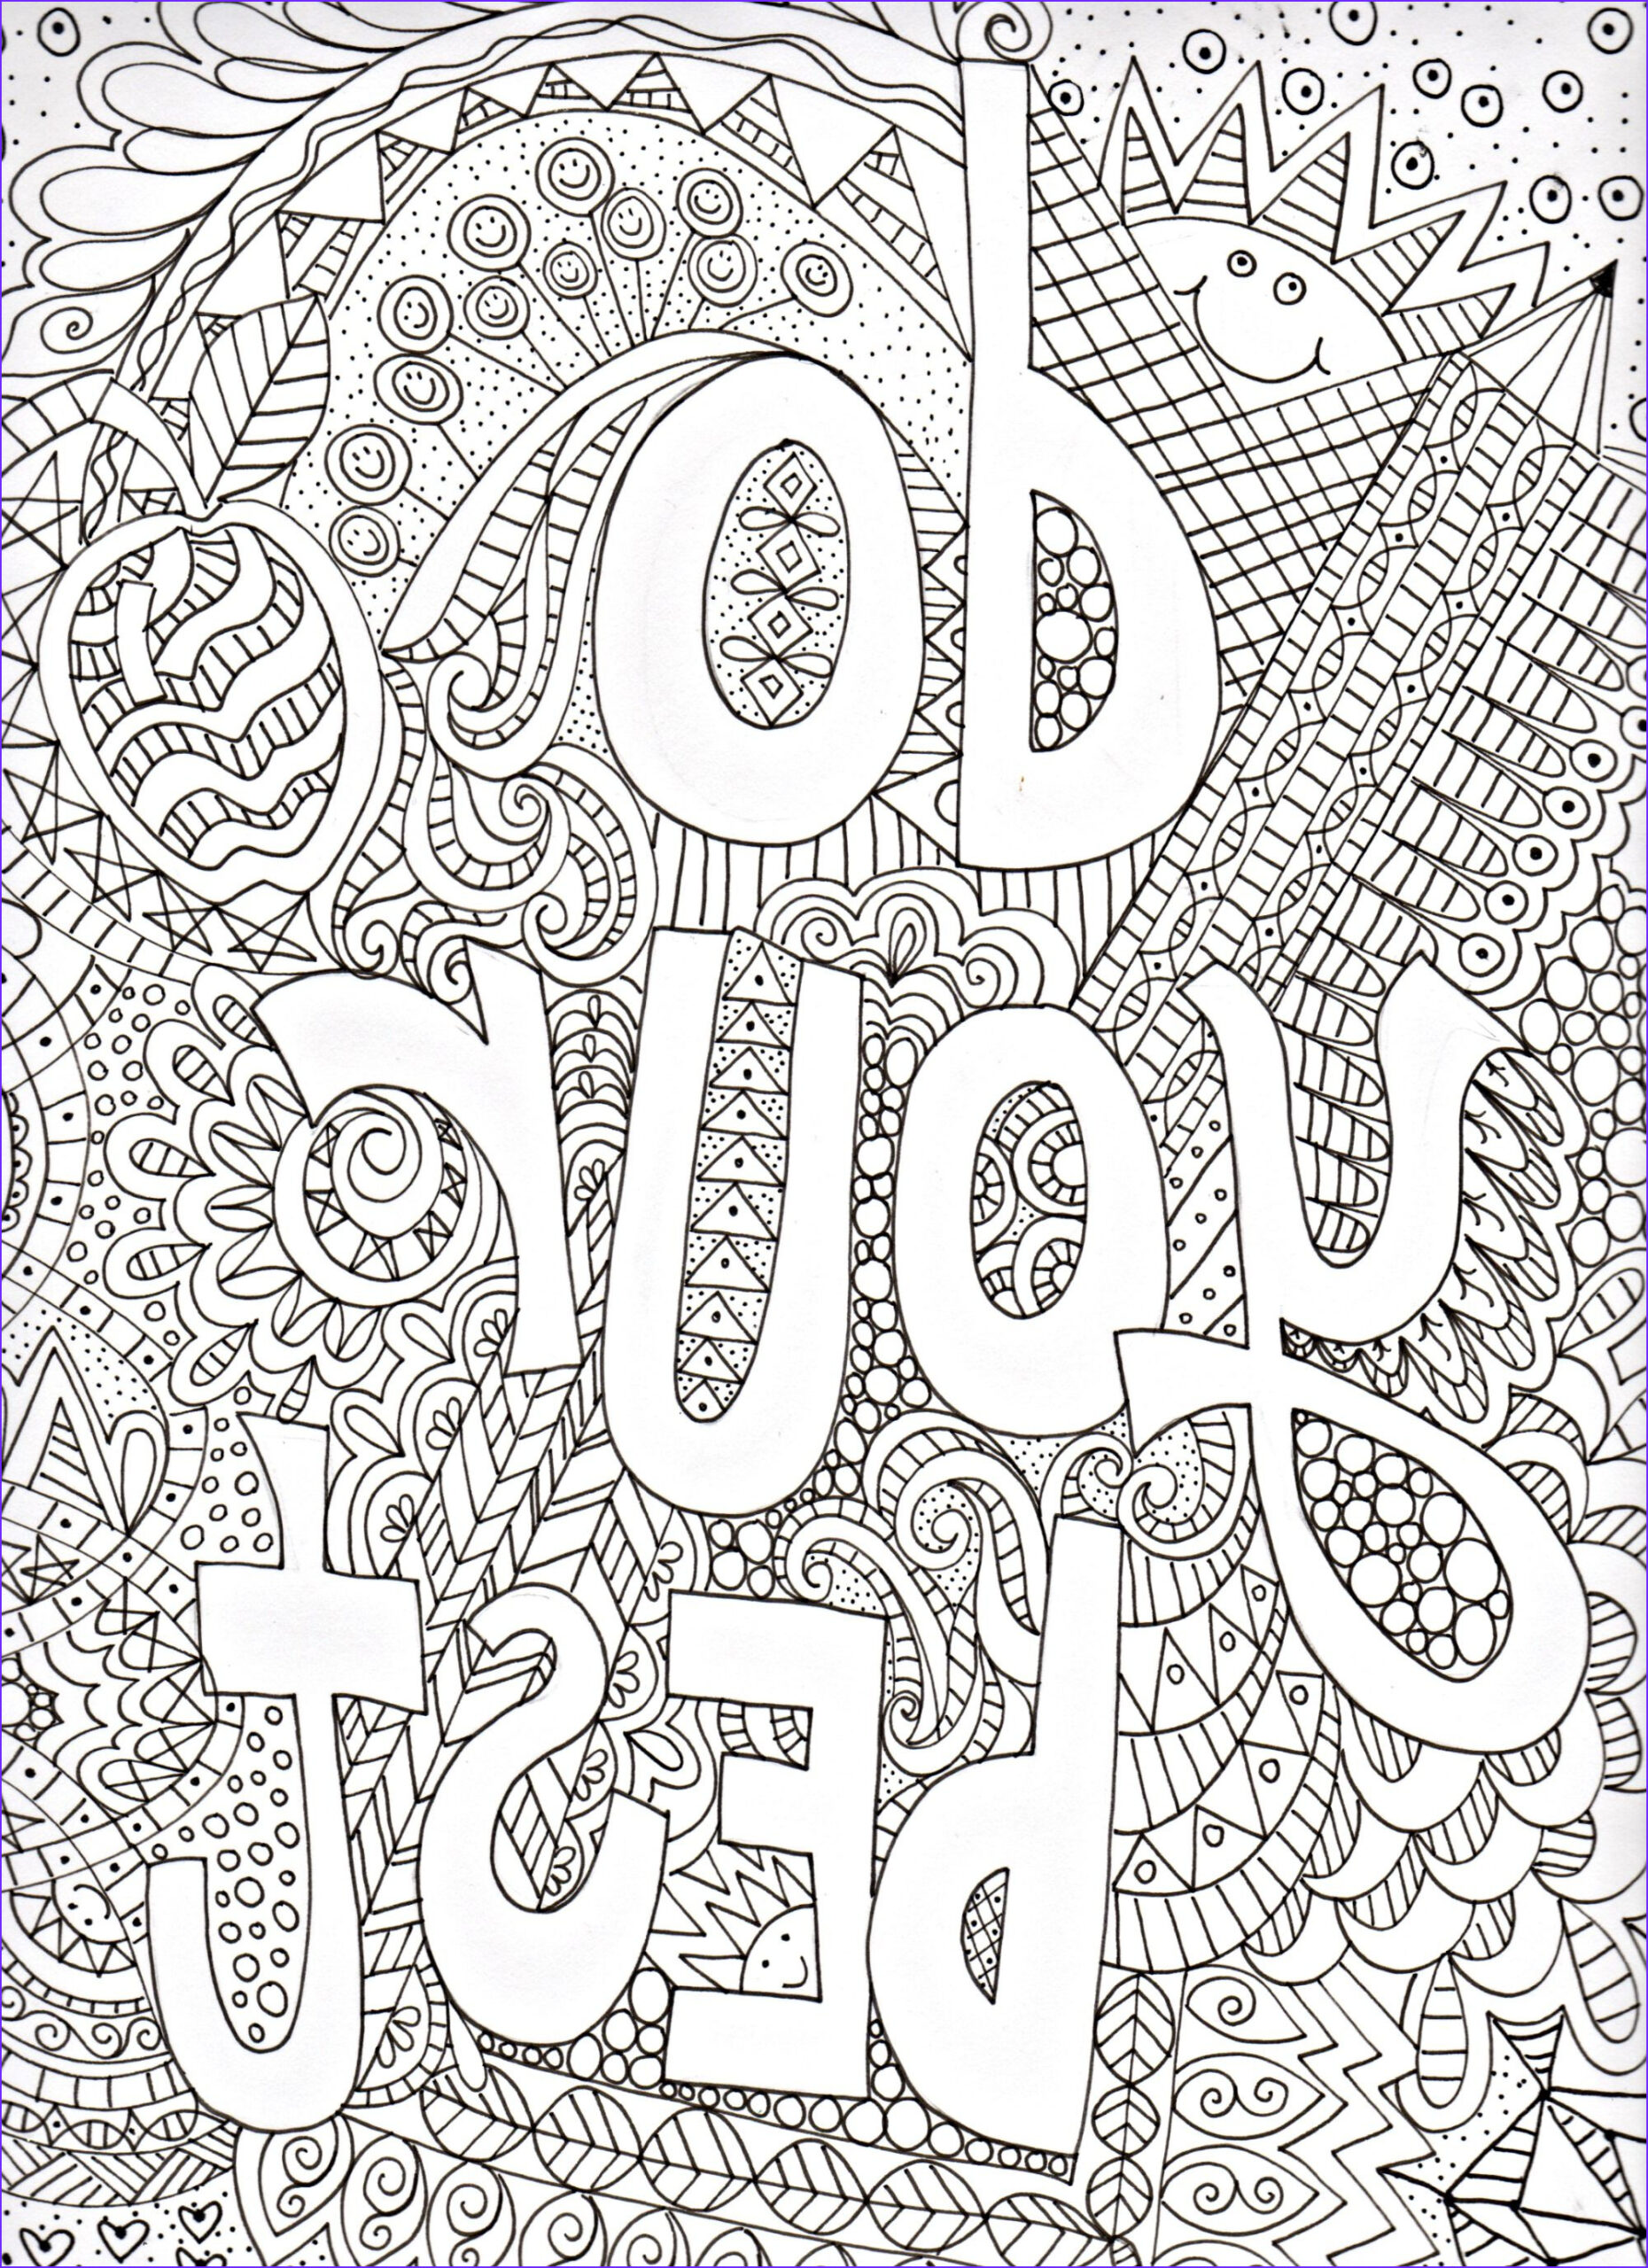 Doodle Art Coloring Pages Inspirational Collection Free Doodle Art Coloring Pages Coloring Home